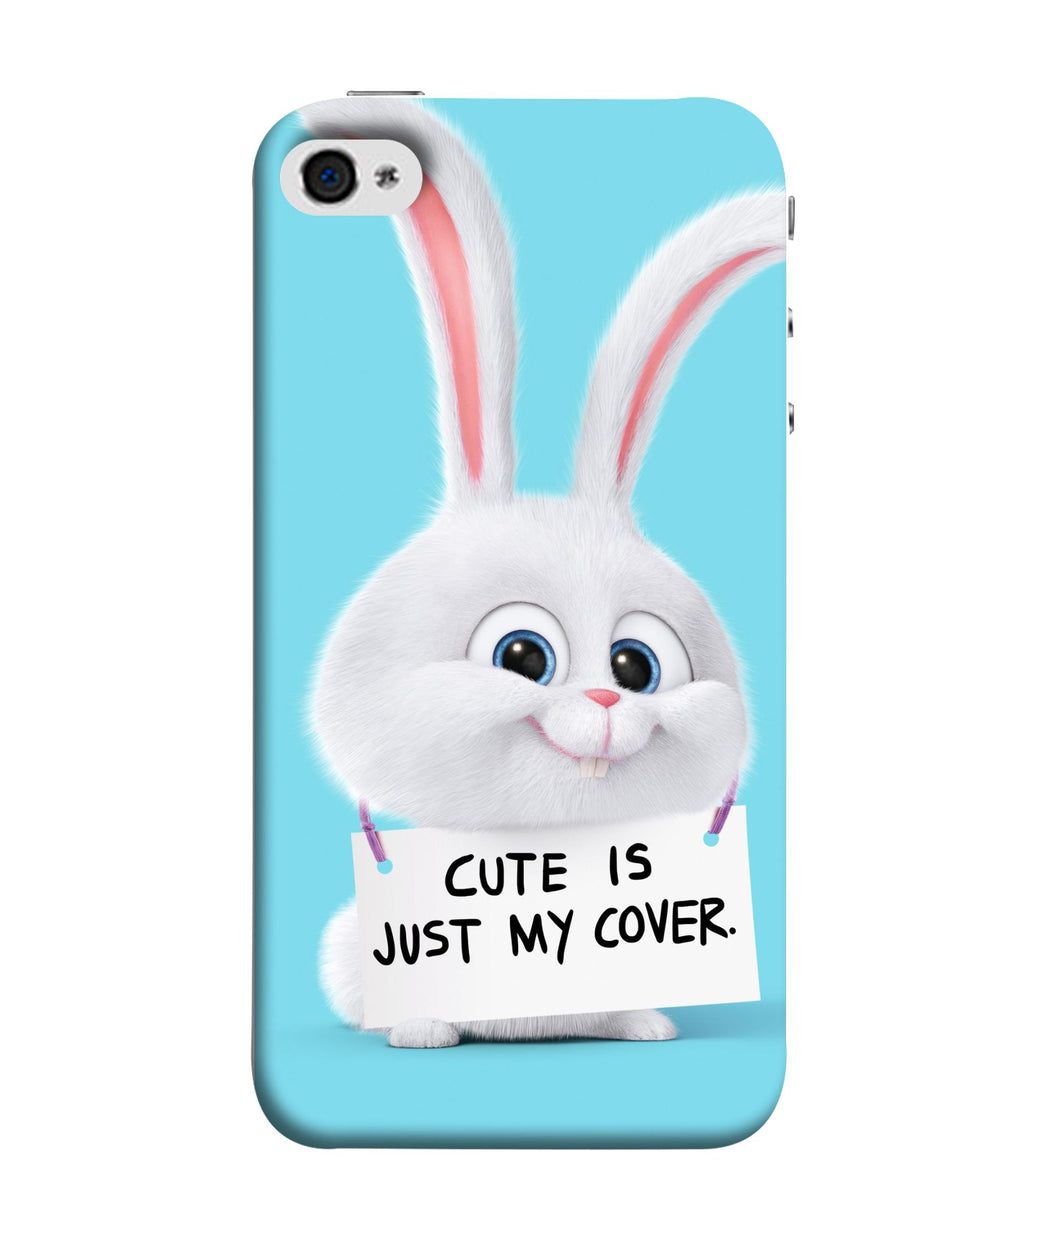 Apple Iphone 5s Bunny Mobile cover